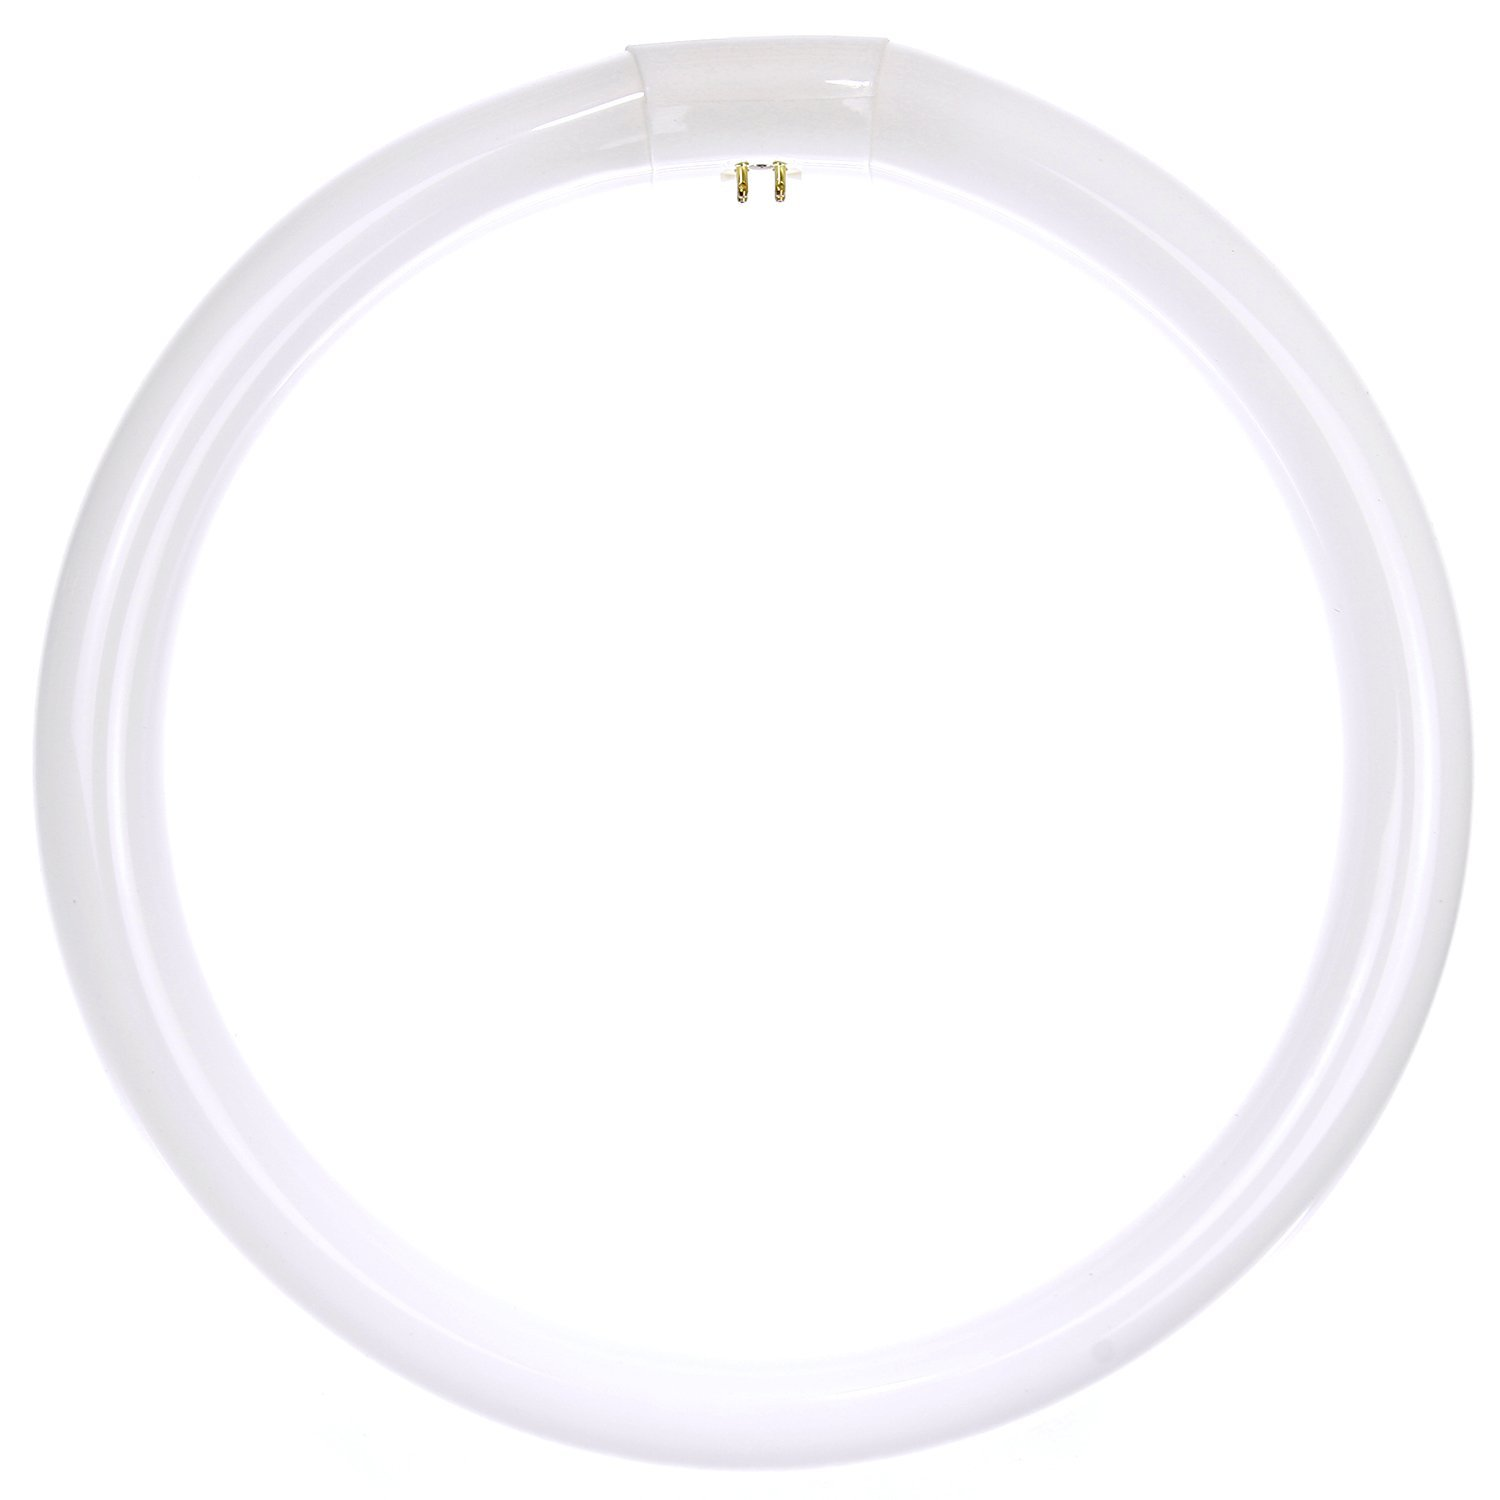 Sunlite FC12T9/DL Fluorescent 32W T9 Circline Ceiling Lights, 6500K Daylight Like Light, 4-Pin Base